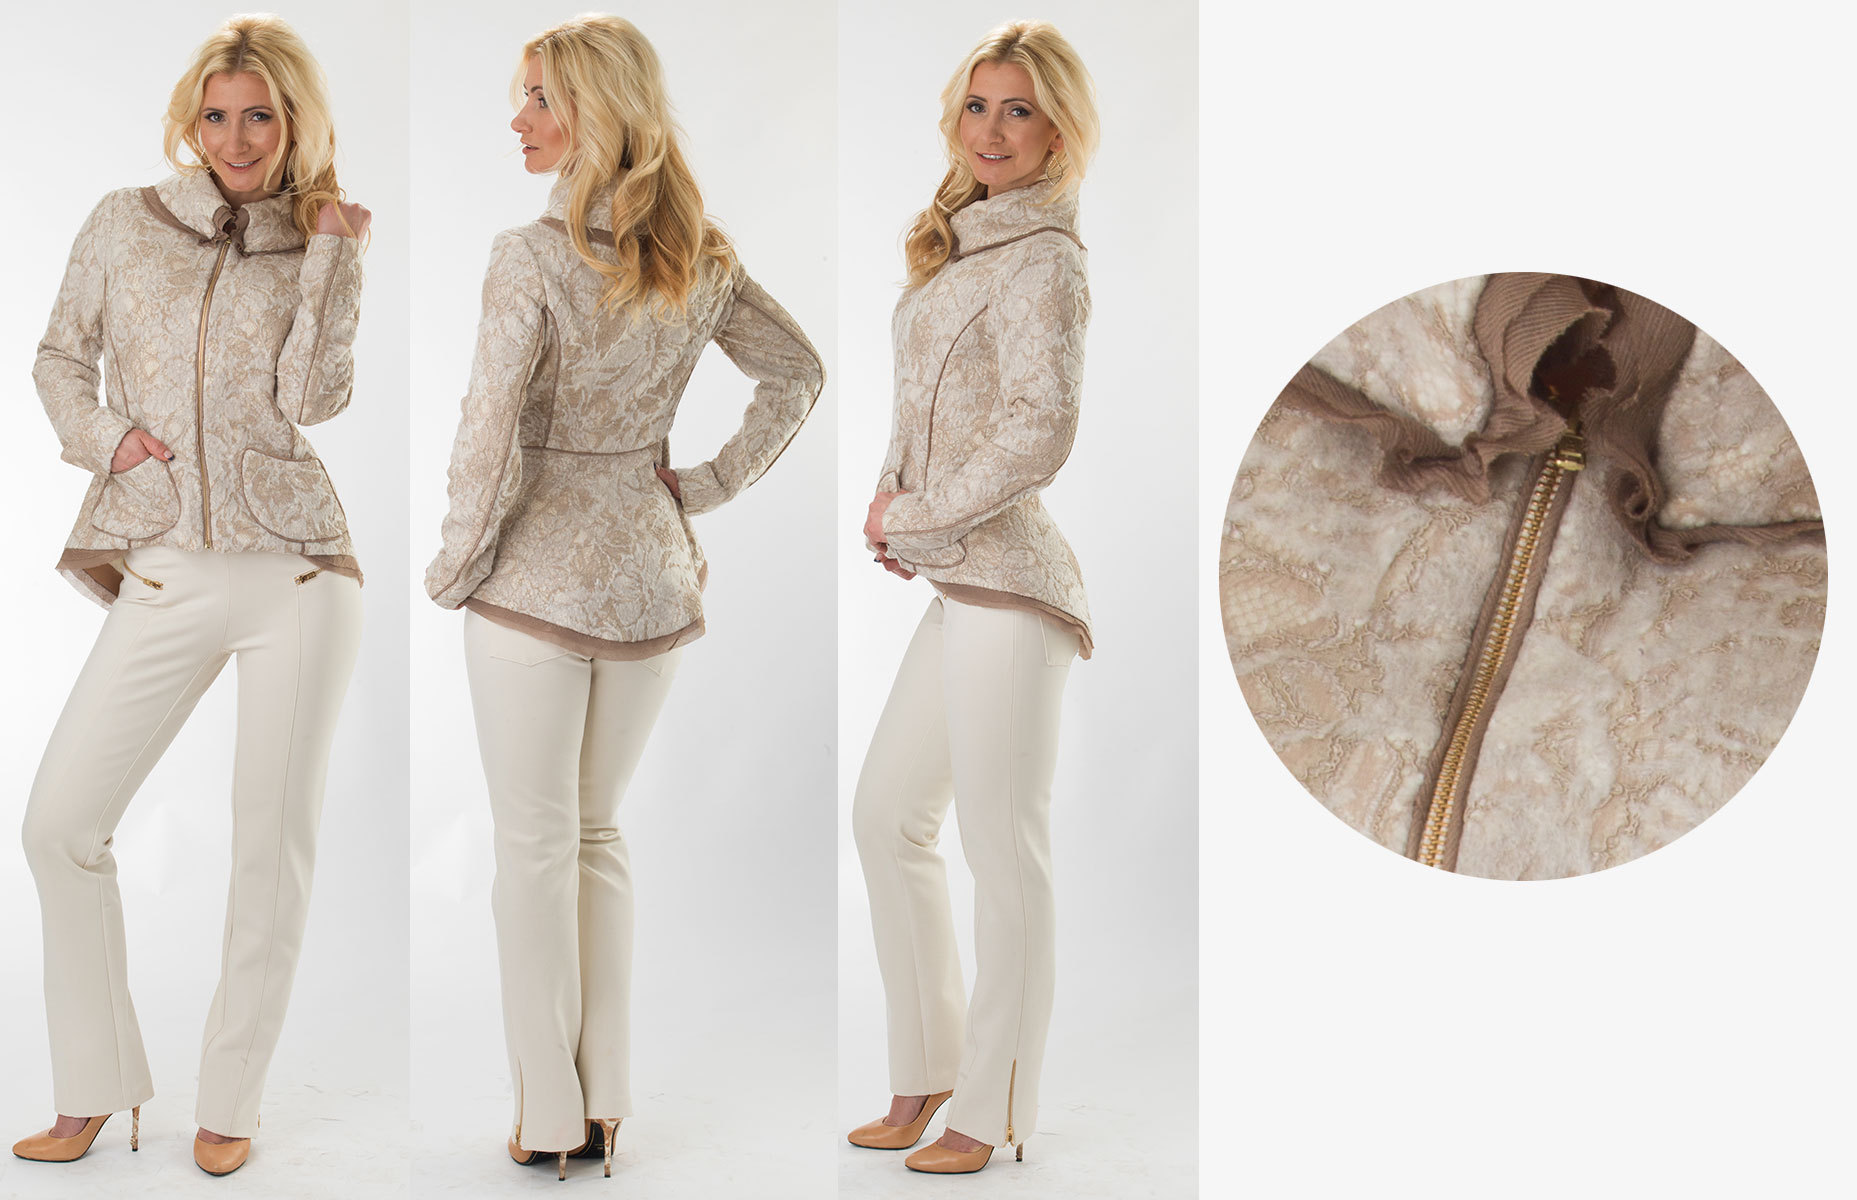 White/Taupe Lace Jacket &  014-017